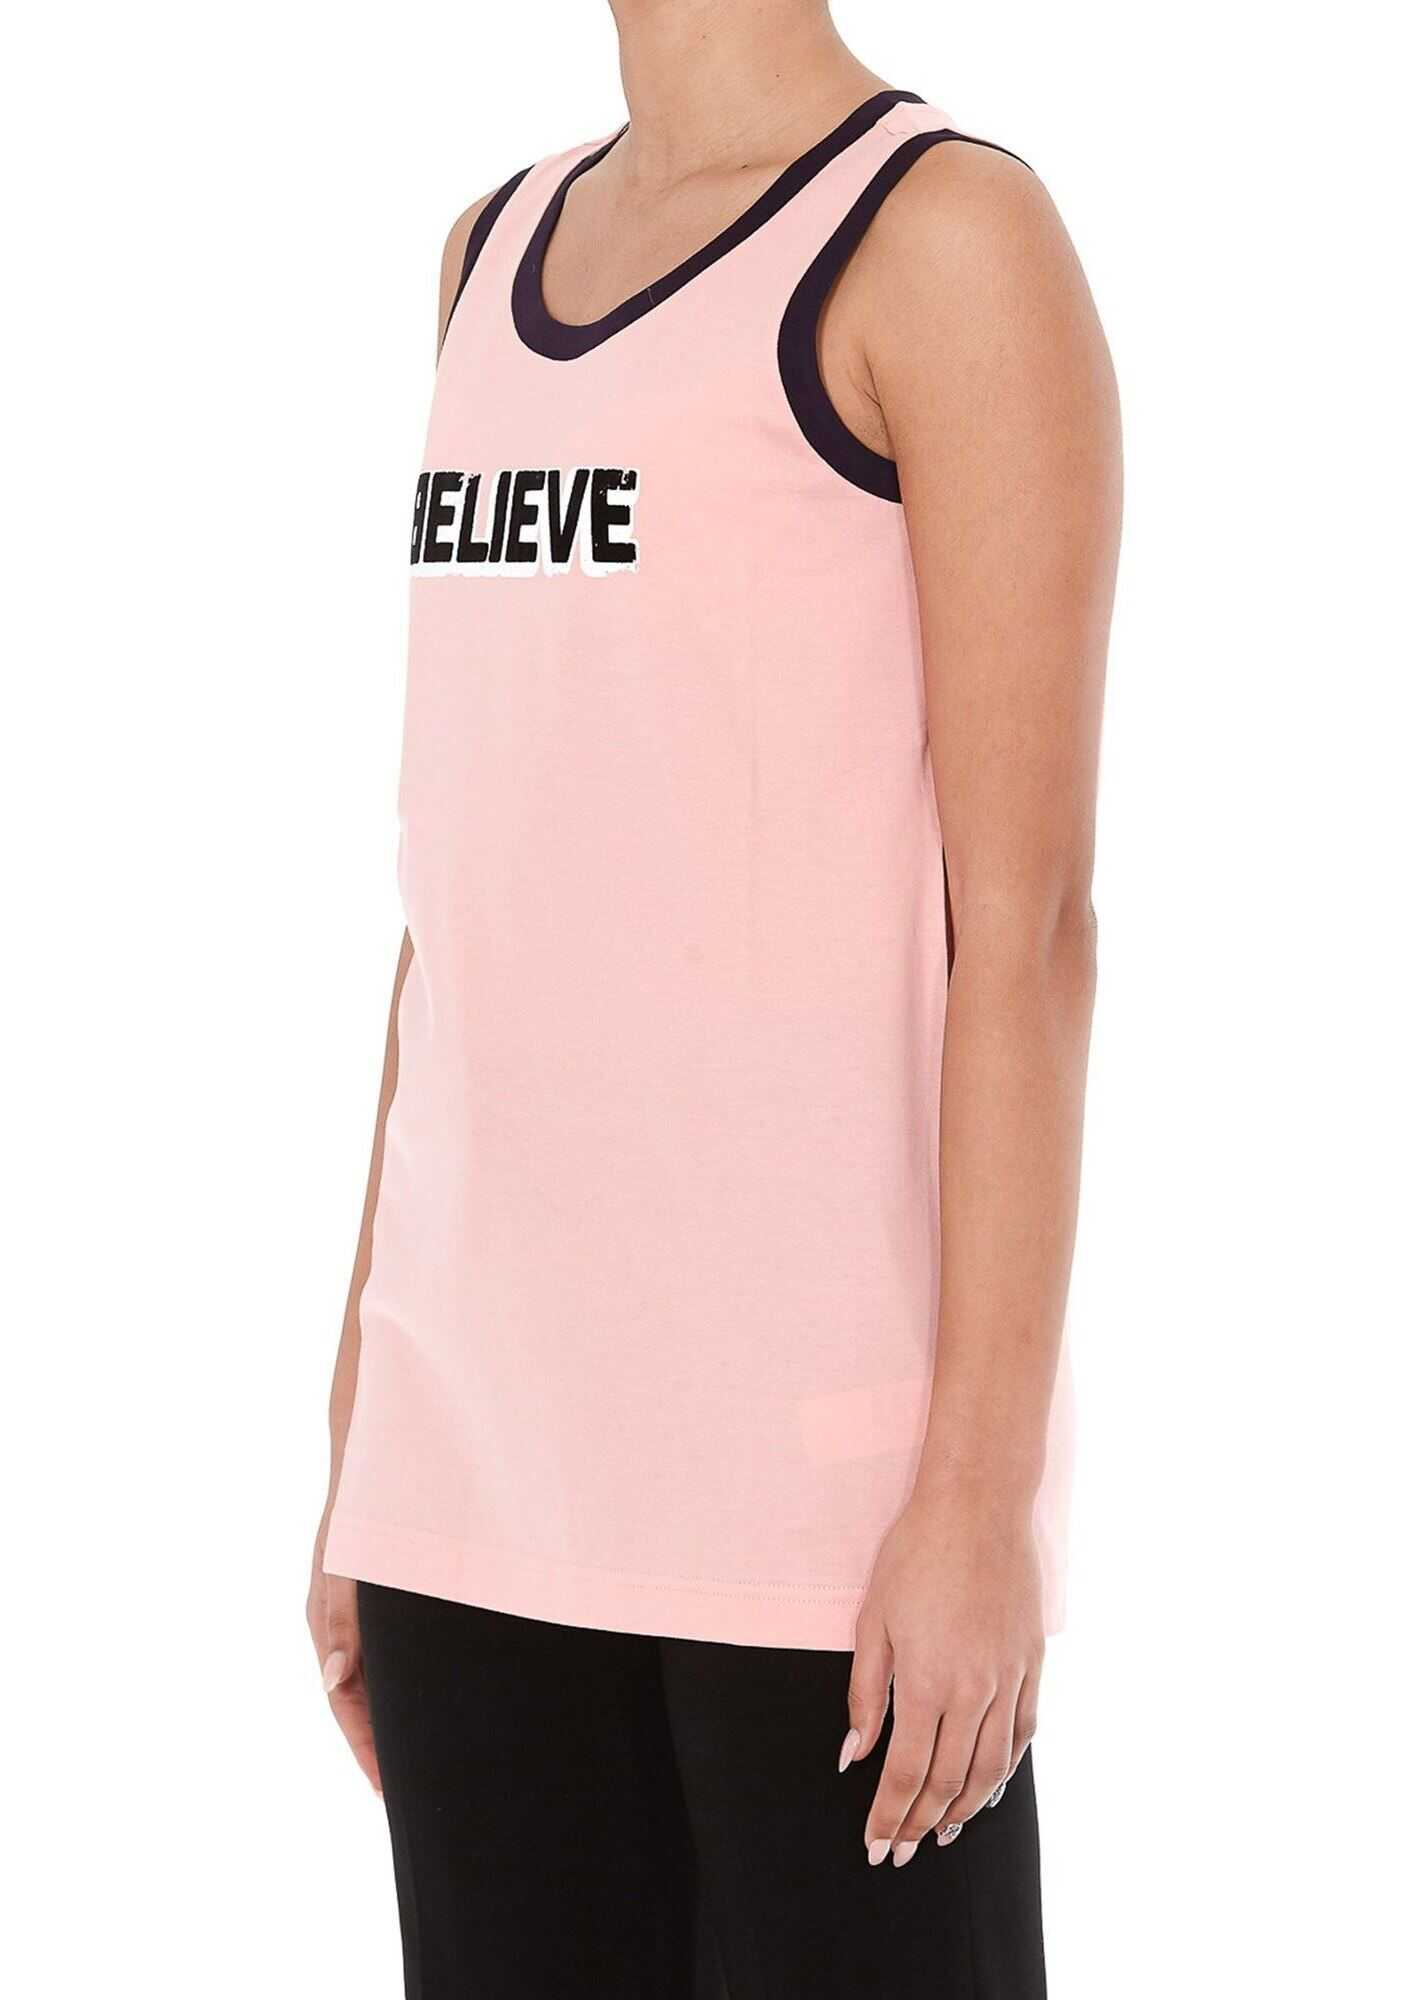 Dolce & Gabbana Used Effect Print Jersey Tank Top Pink